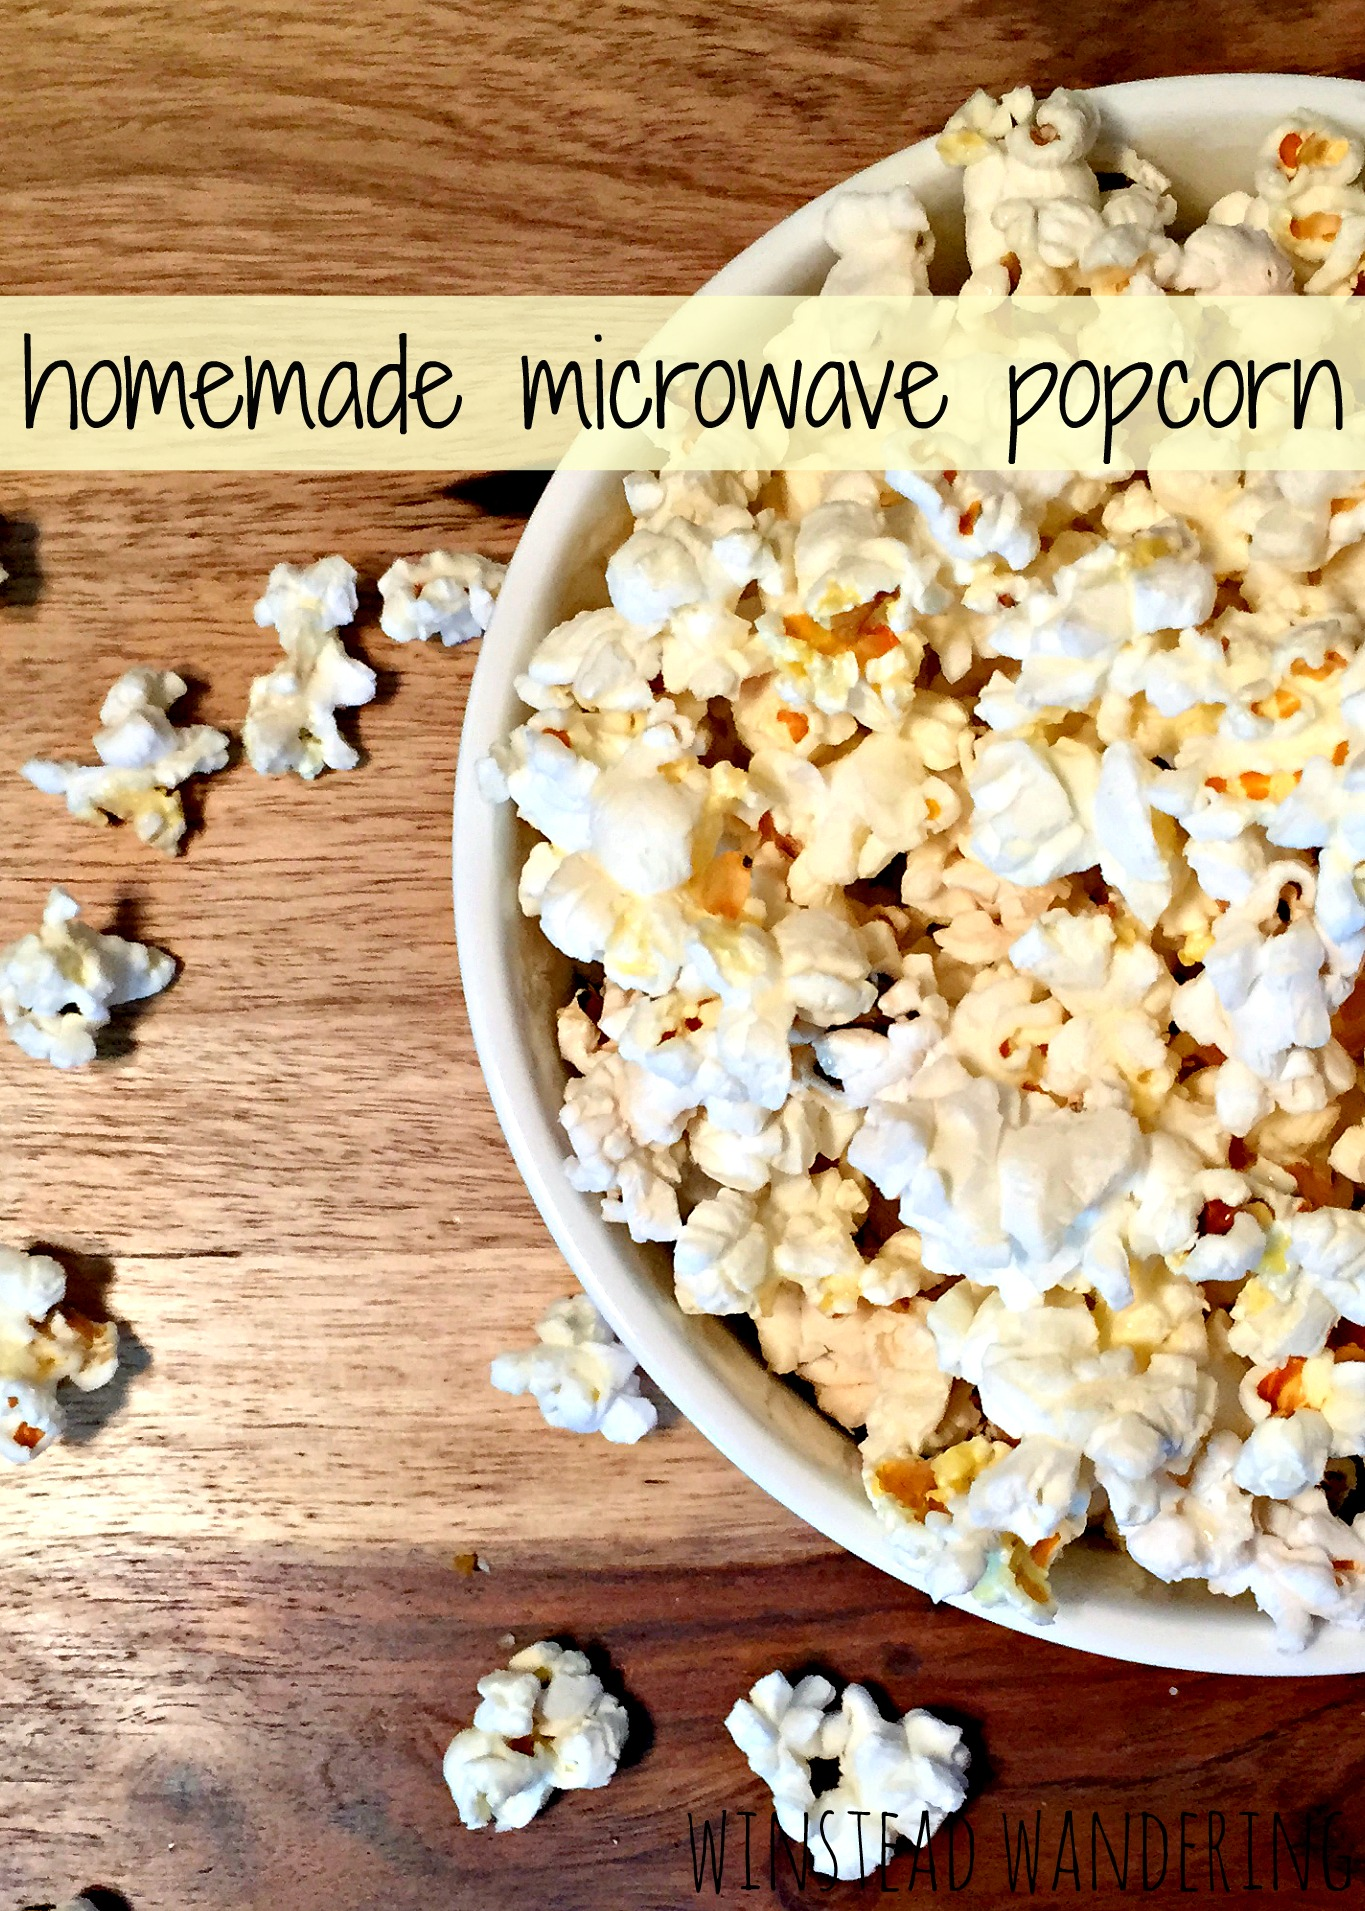 who knew you could make popcorn in your microwave without all of the nasty chemicals of the store-bought bags? It's easy and you can add any flavors you want | winstead wandering